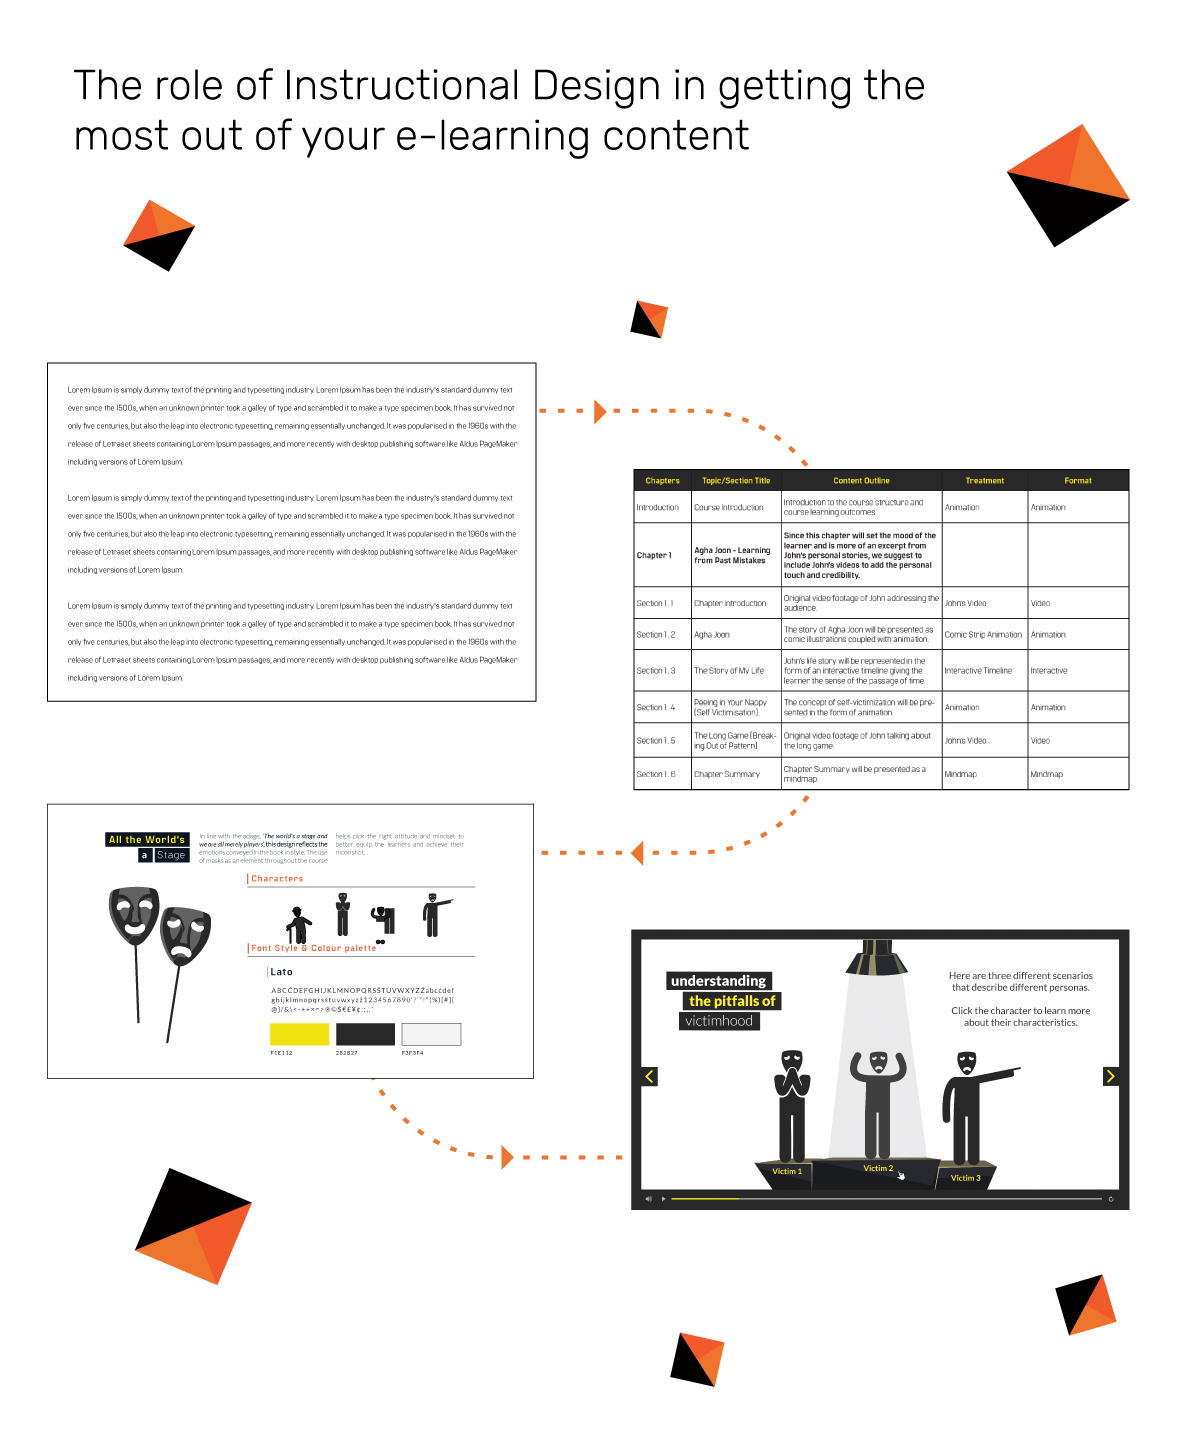 The role of Instructional Design in getting the most out of your e-learning content